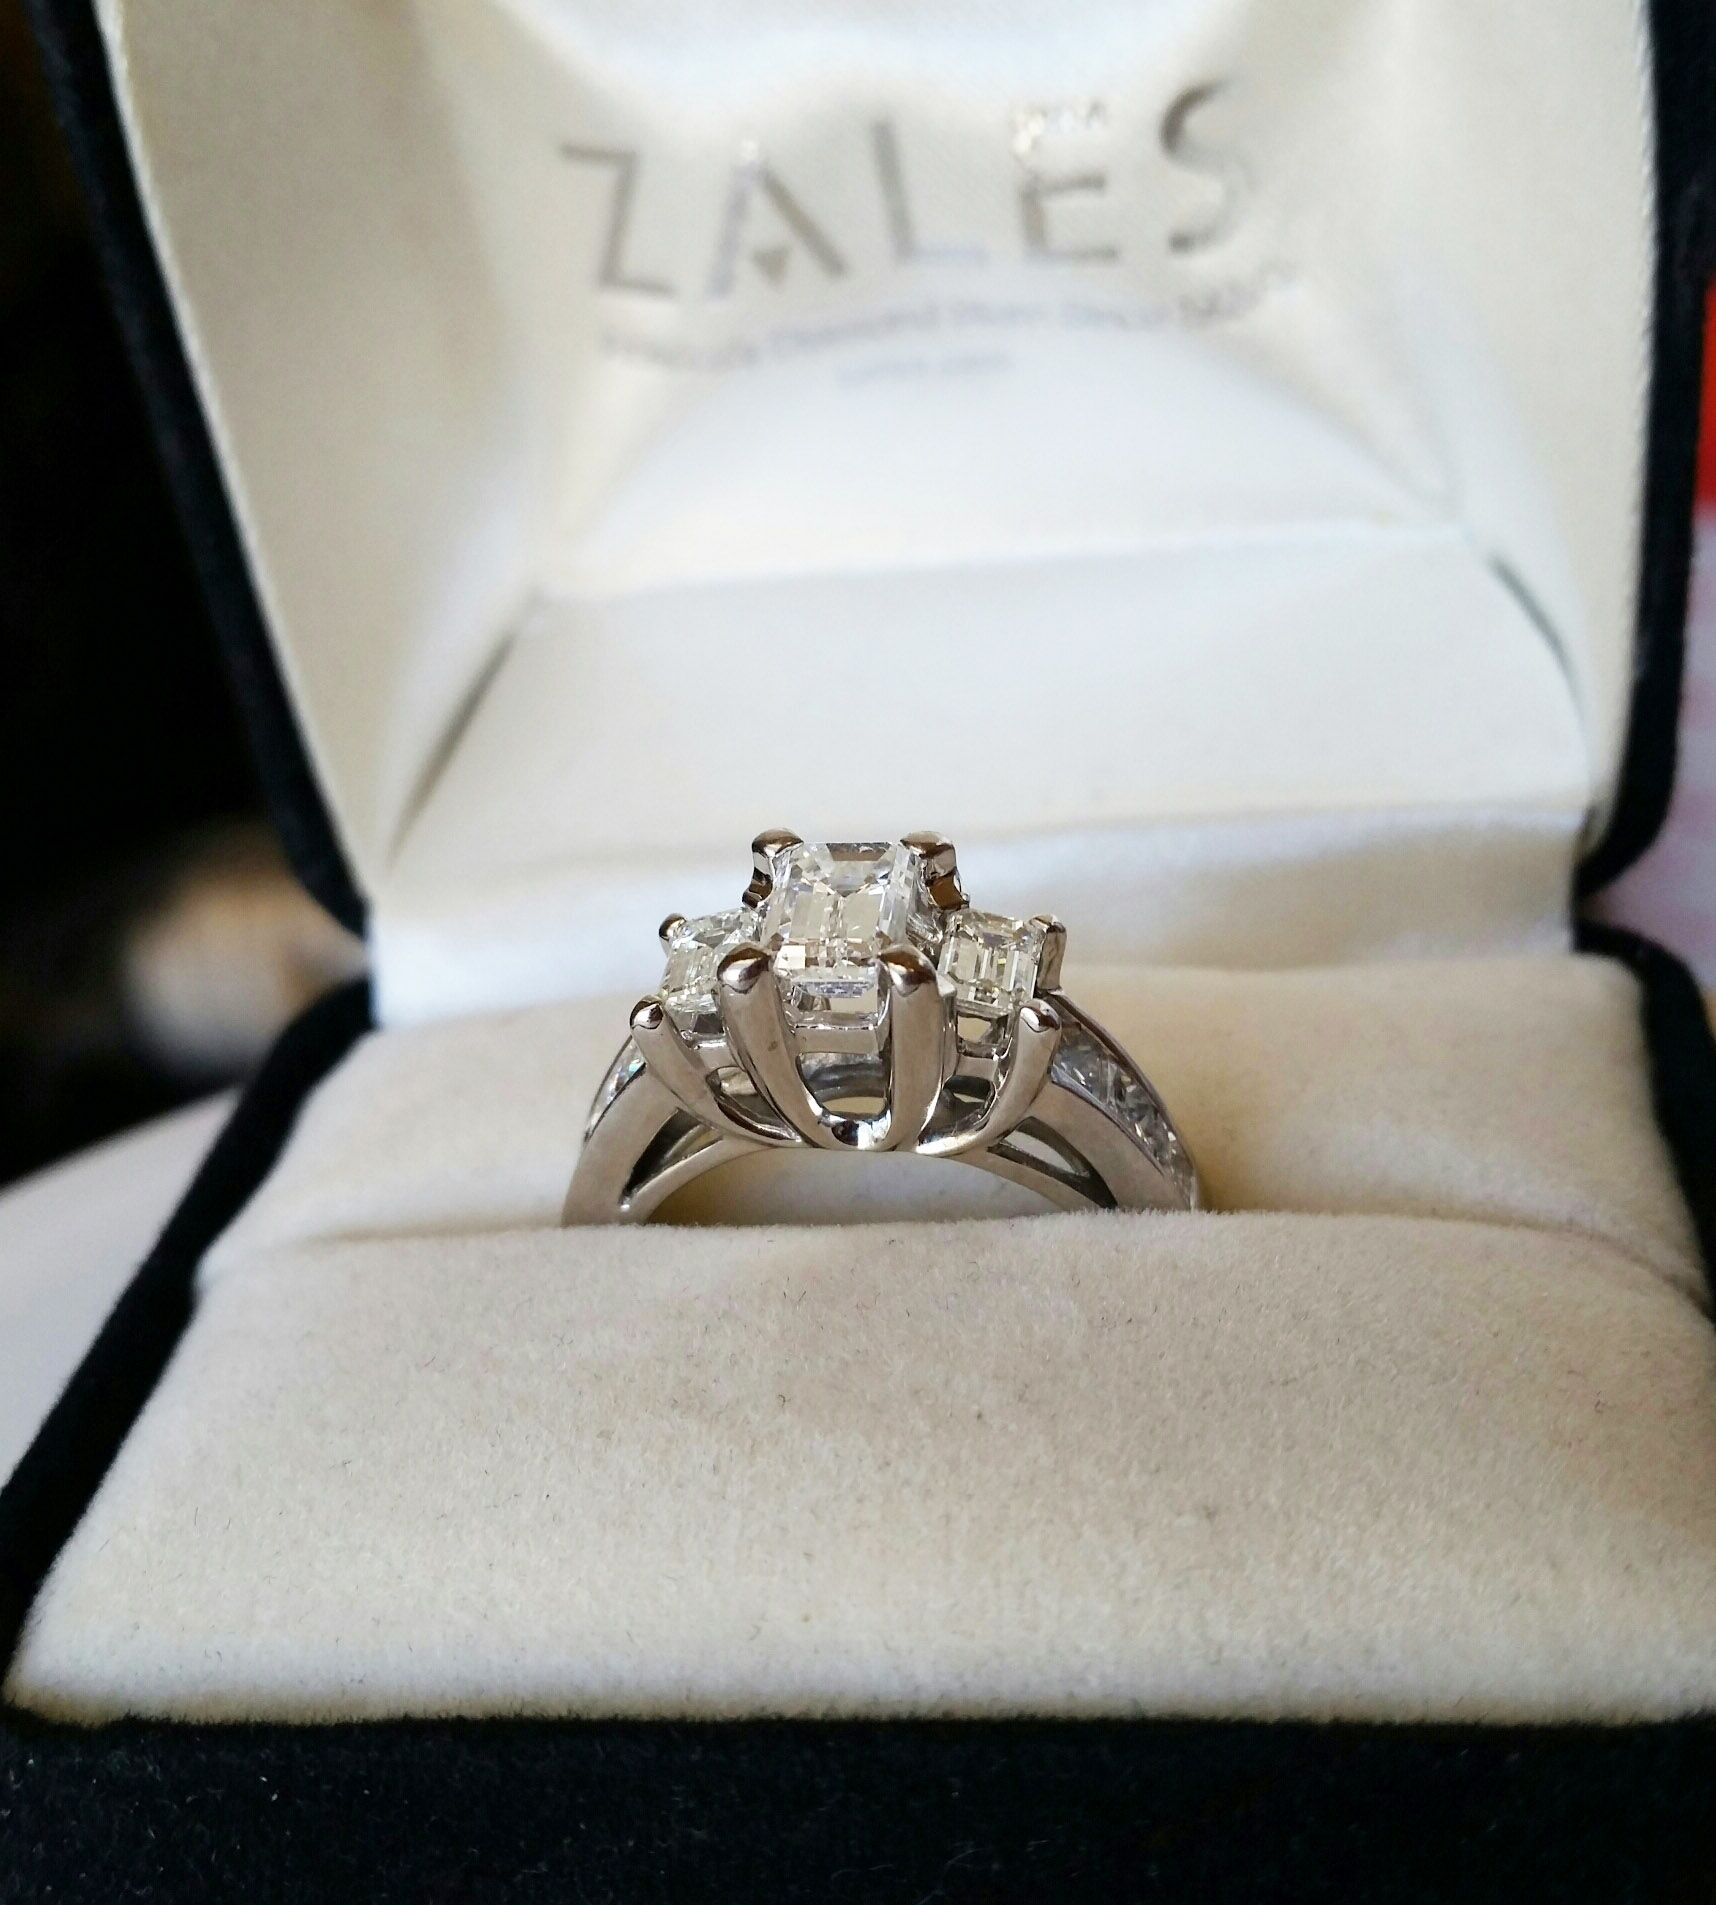 29d290f15f8 3 Stone Emerald-cut 18K White Gold Engagment Ring with 6 channel-set  princess-cut accent diamonds, 2+ CTW GSL Certified (ZALES)